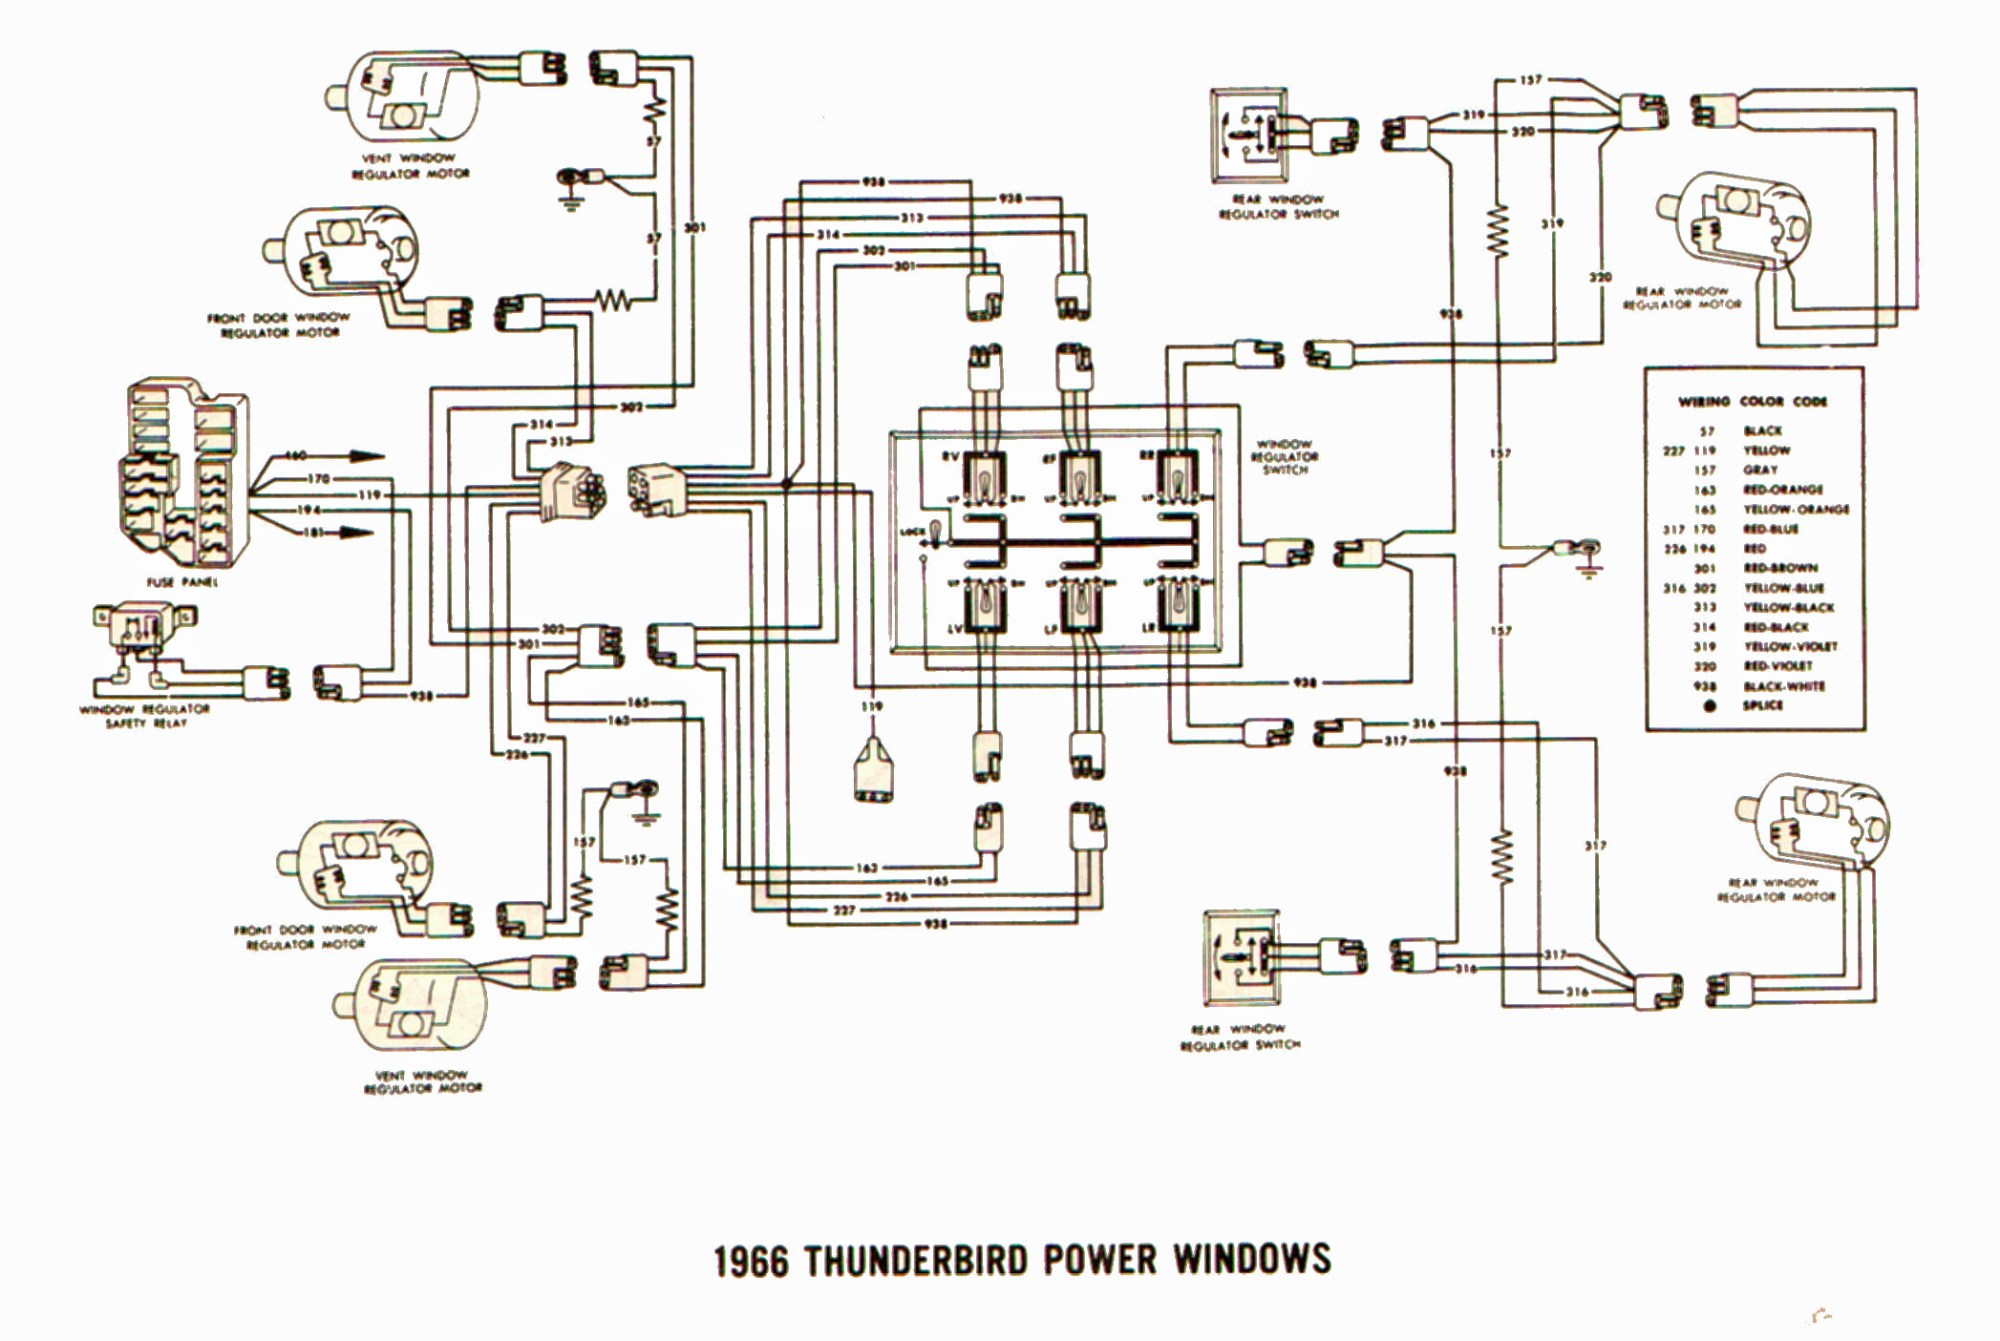 hight resolution of 1972 ford thunderbird wiring diagram wiring diagram for you diagram 1969 mustang frame diagram 1965 ford thunderbird wiring